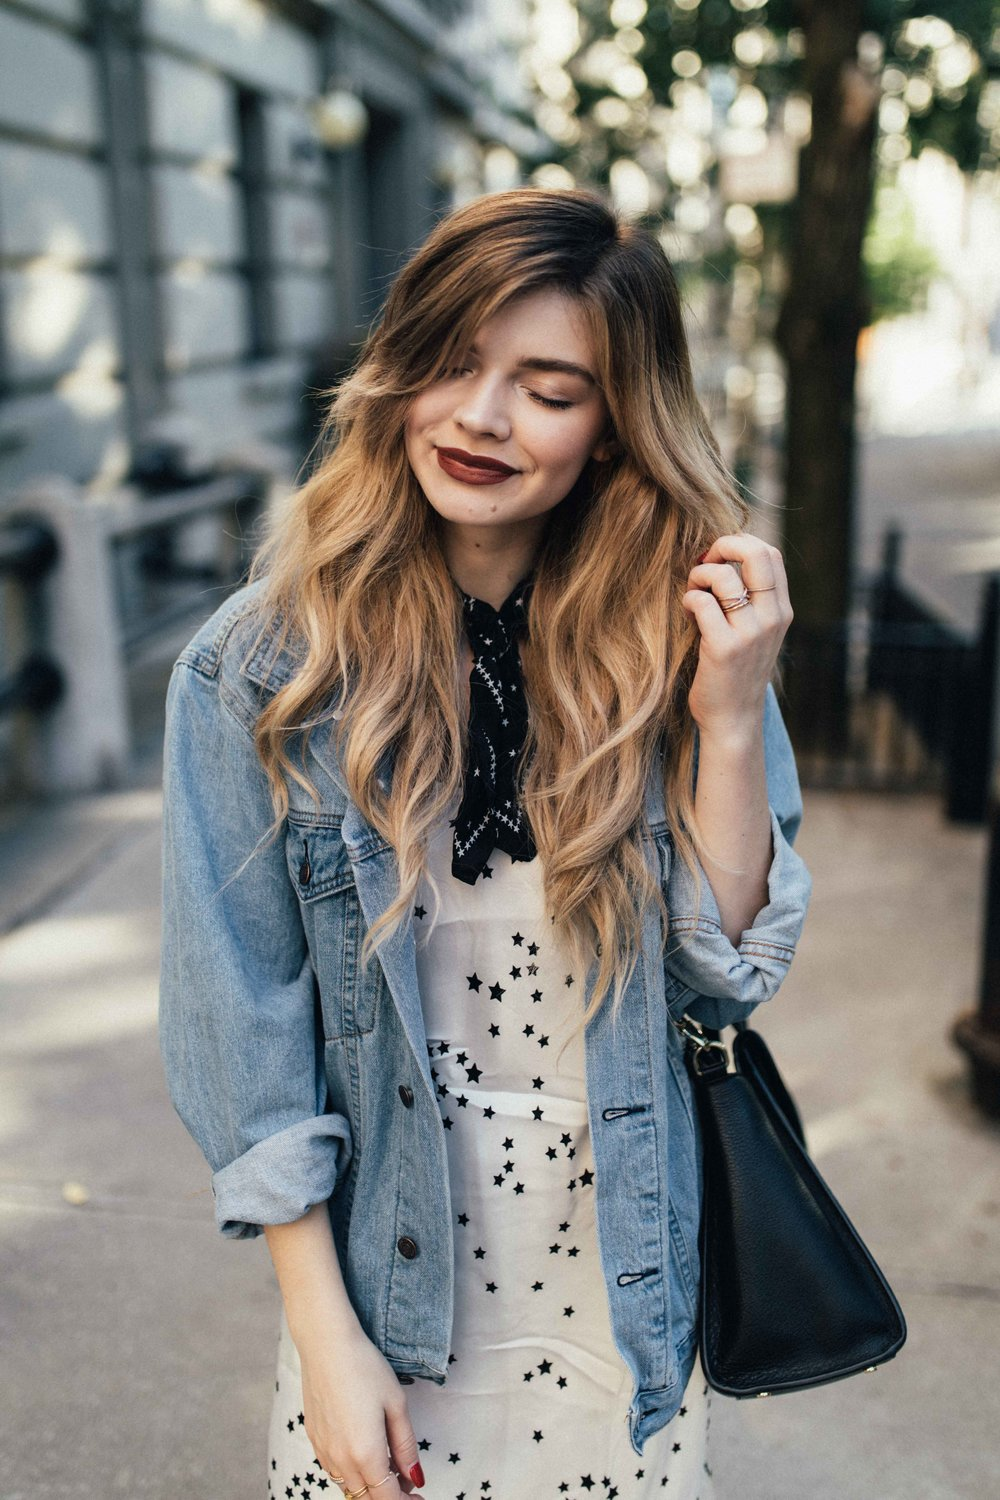 outfits_ (1 of 6).jpg